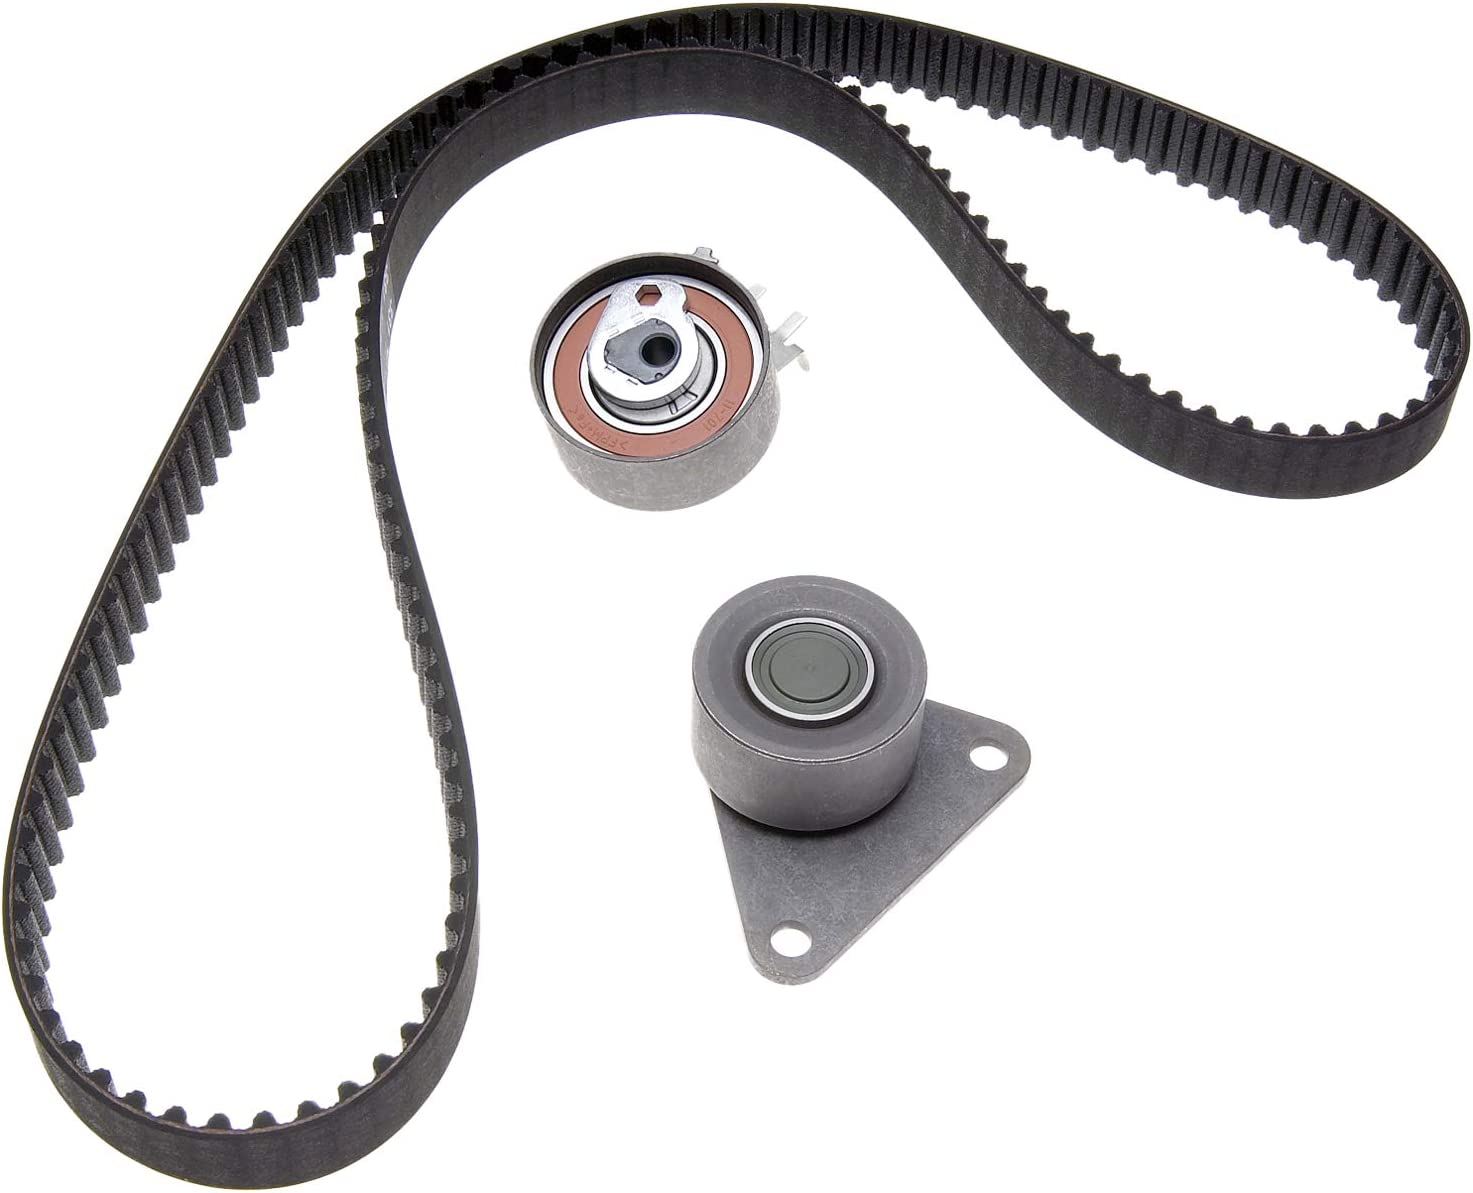 ACDelco Professional TCK331 Timing Belt Tensioner Translated I and High material Kit with